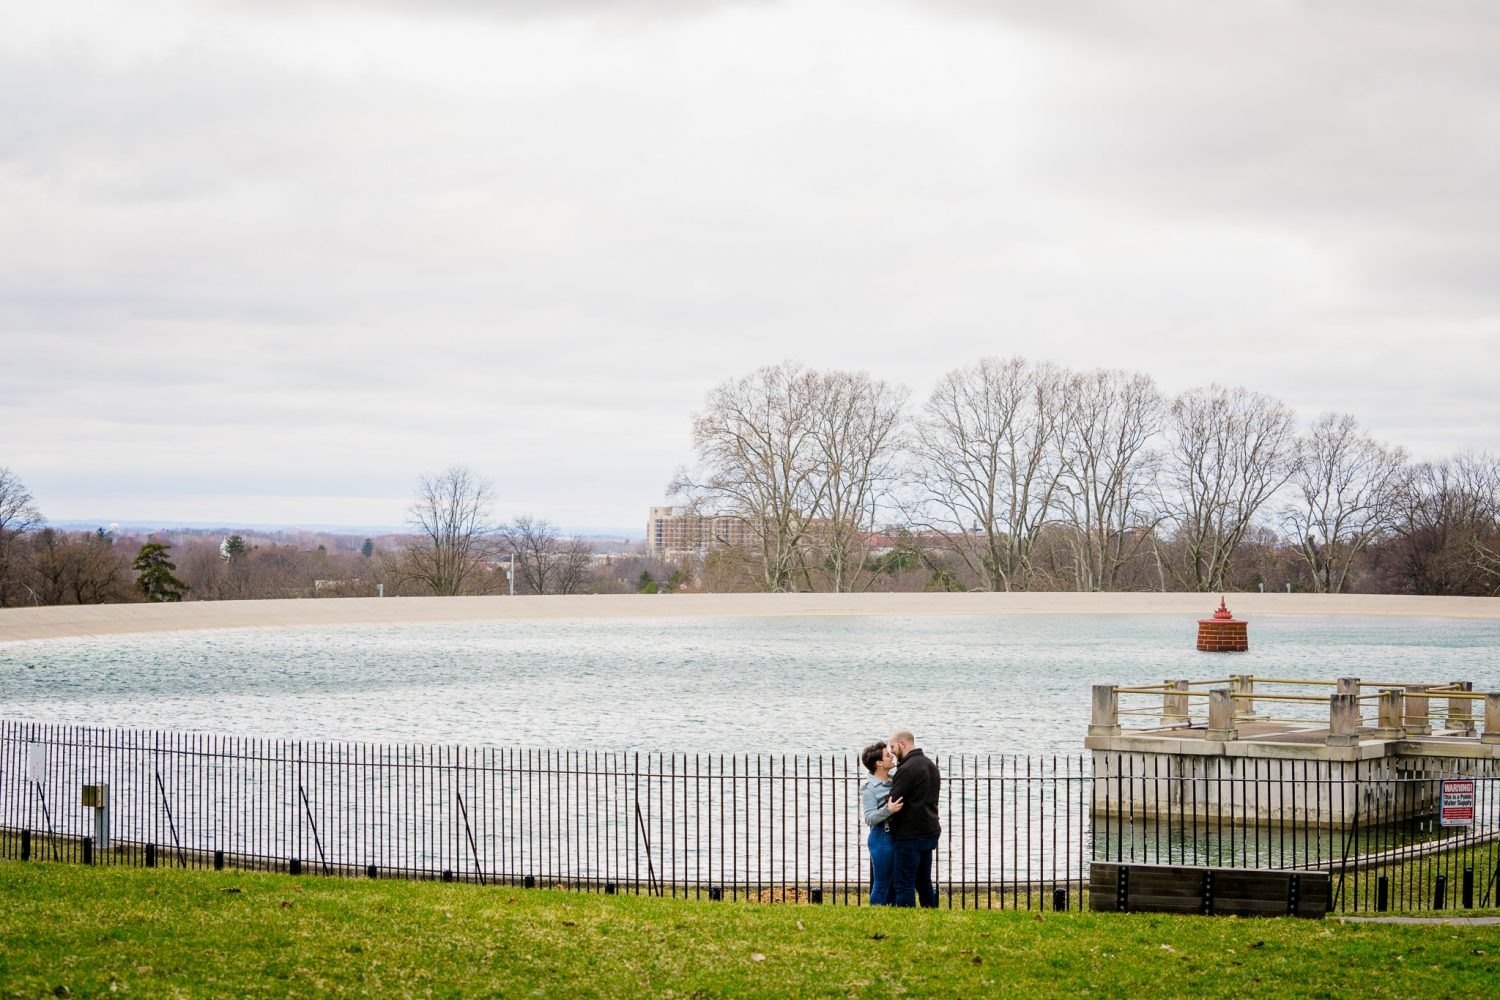 A man in a black jacket kisses his girlfriend near the highland park resovoir.